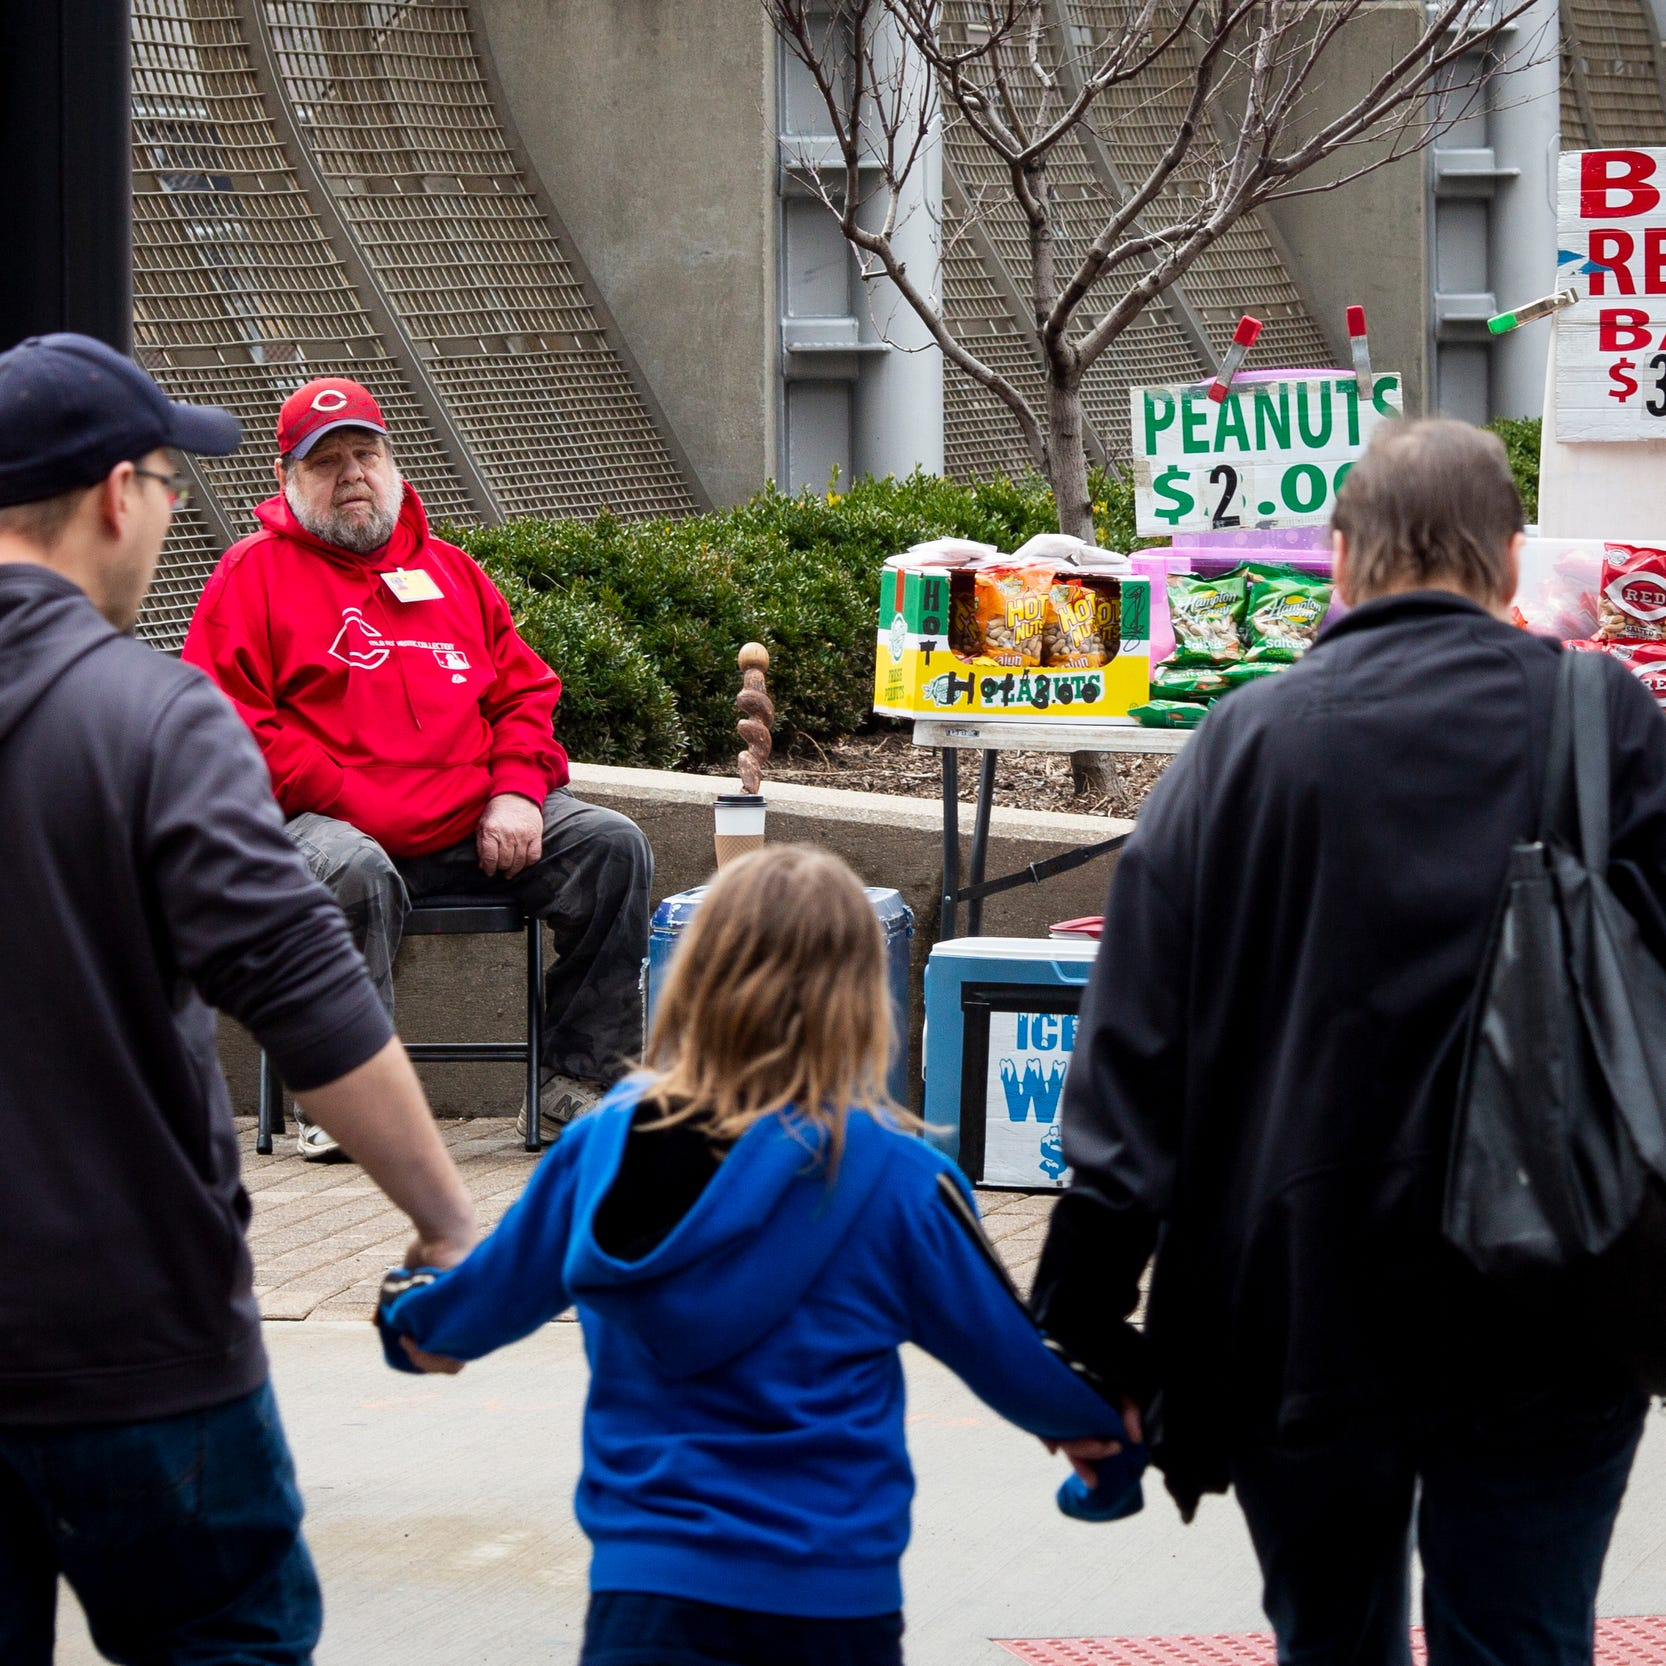 Larry Mullins sits on the corner of Third Street and Walnut Street in downtown Cincinnati before Cincinnati Reds Opening Day game against the Pittsburgh Pirates at Great American Ball Park Thursday, March 28, 2019. Mullins has been selling peanuts for the last 20Êyears at Reds and Bengals home games.